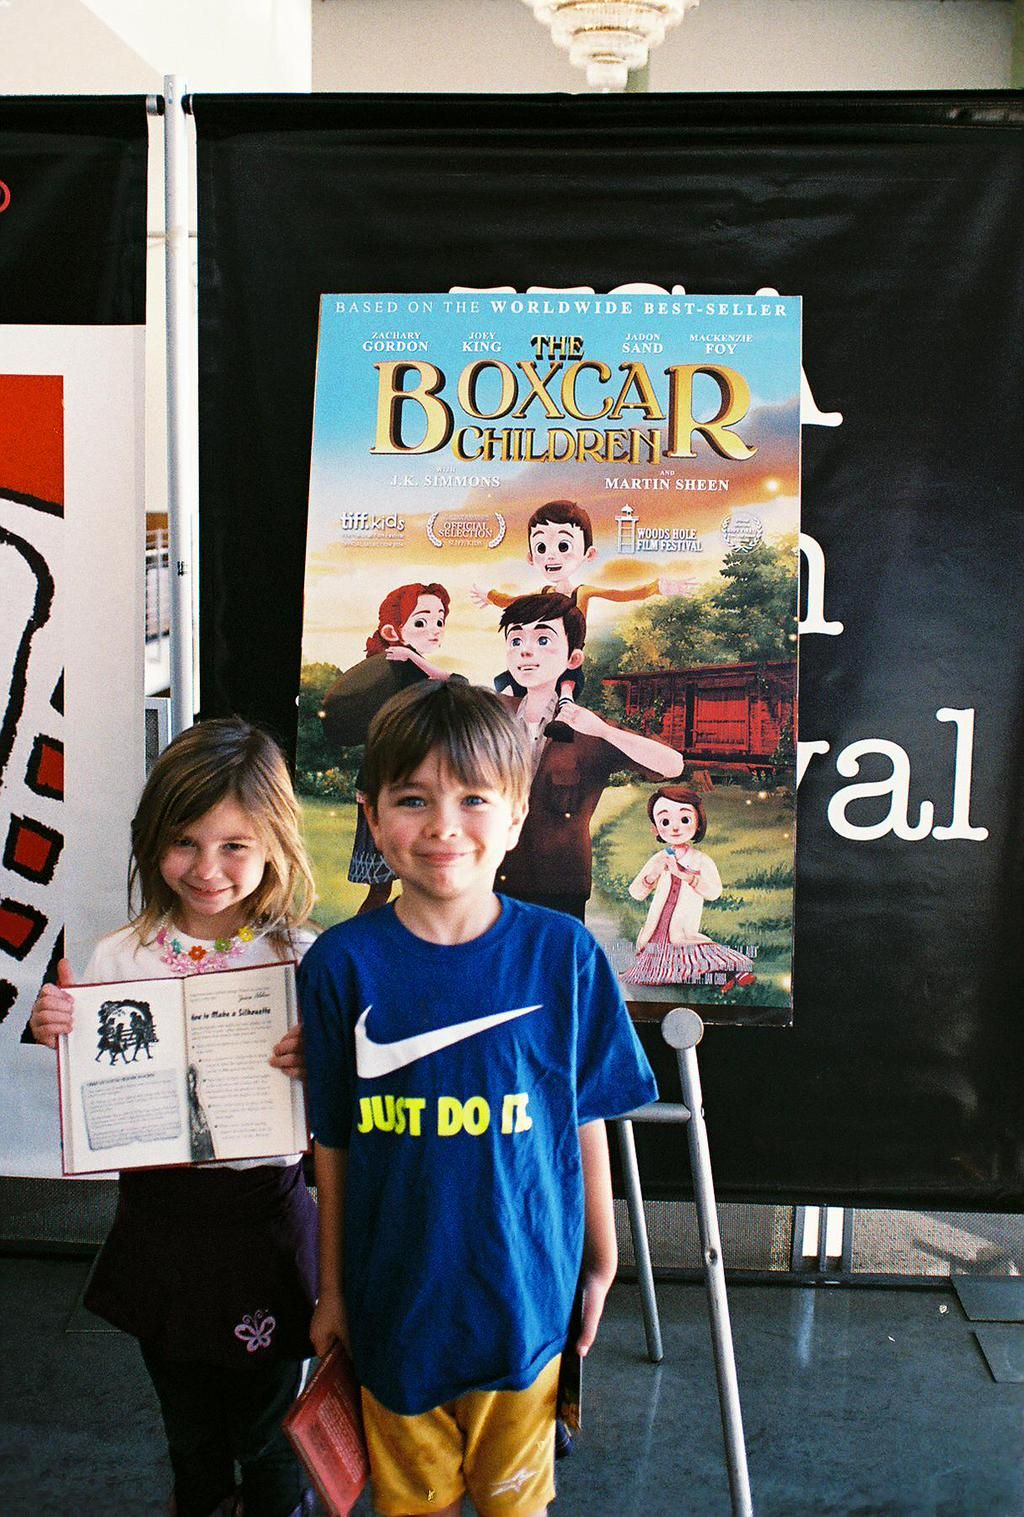 The Boxcar Children on Kids book series, Children